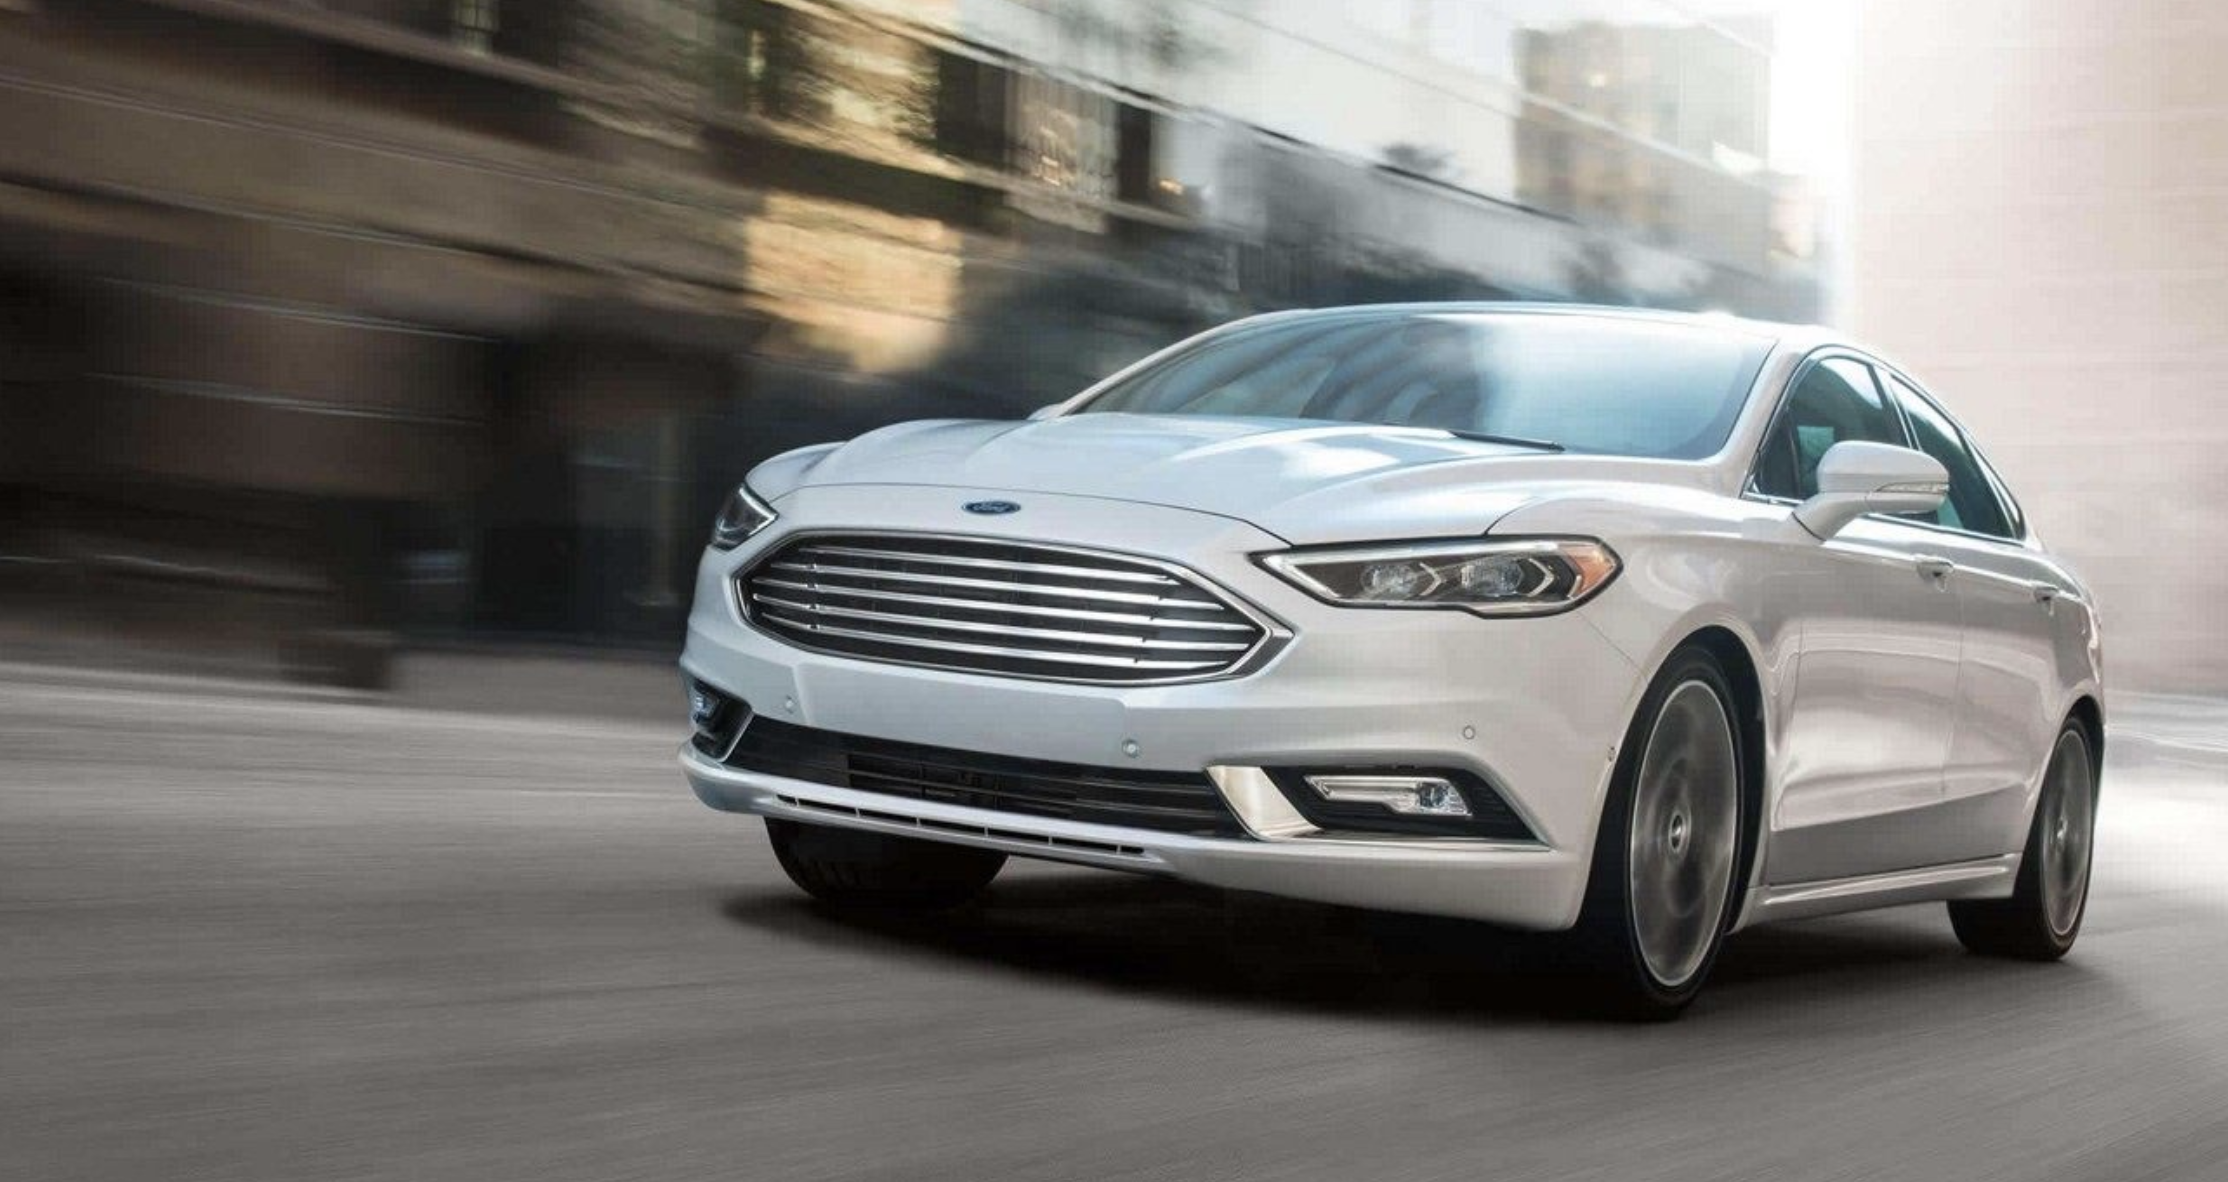 New Ford Fusion Hybrid On Sale Now at Ricart Ford in Columbus OH